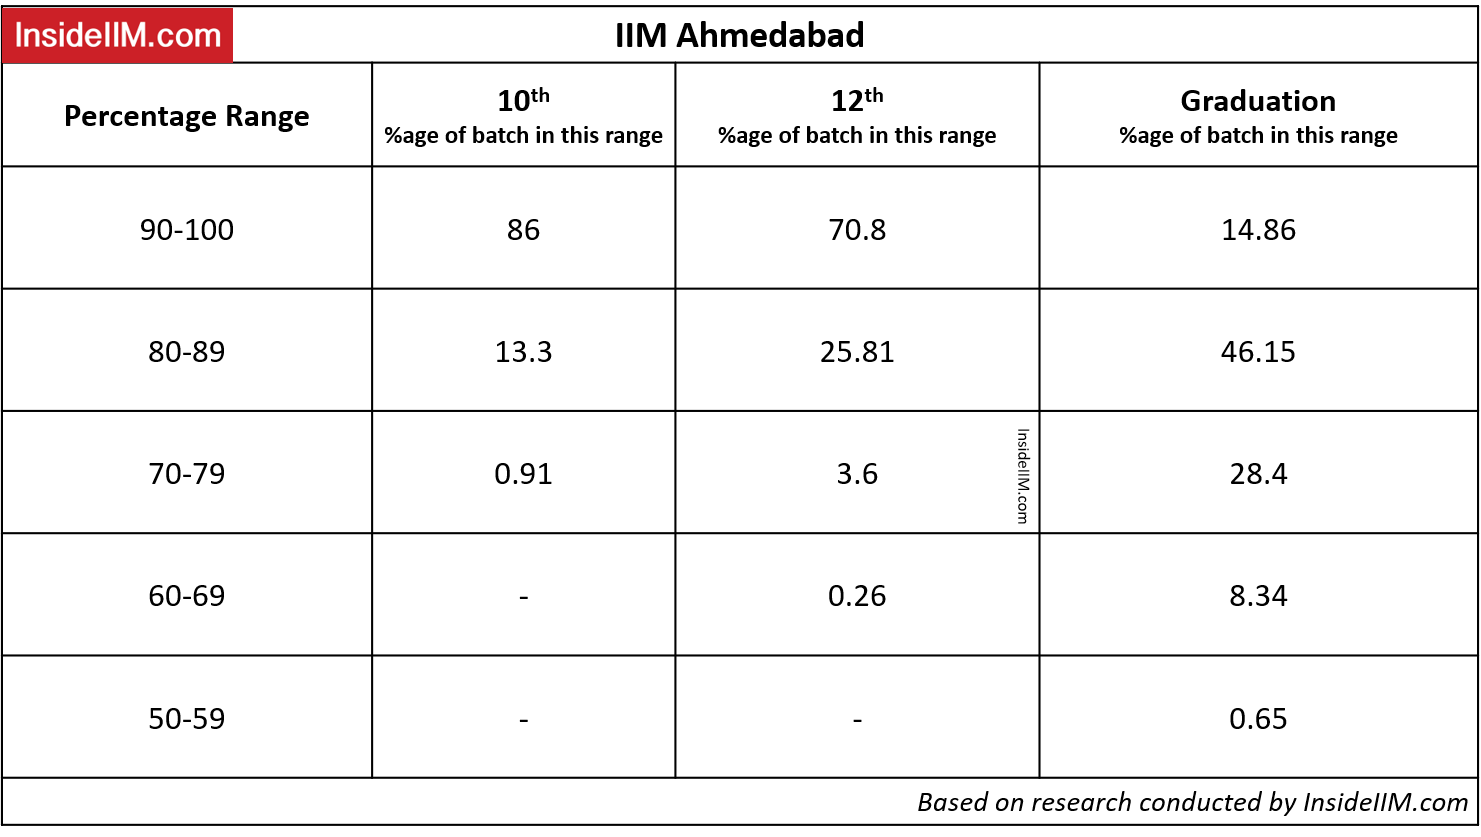 IIM Ahmedabad Academic Profile Requirements